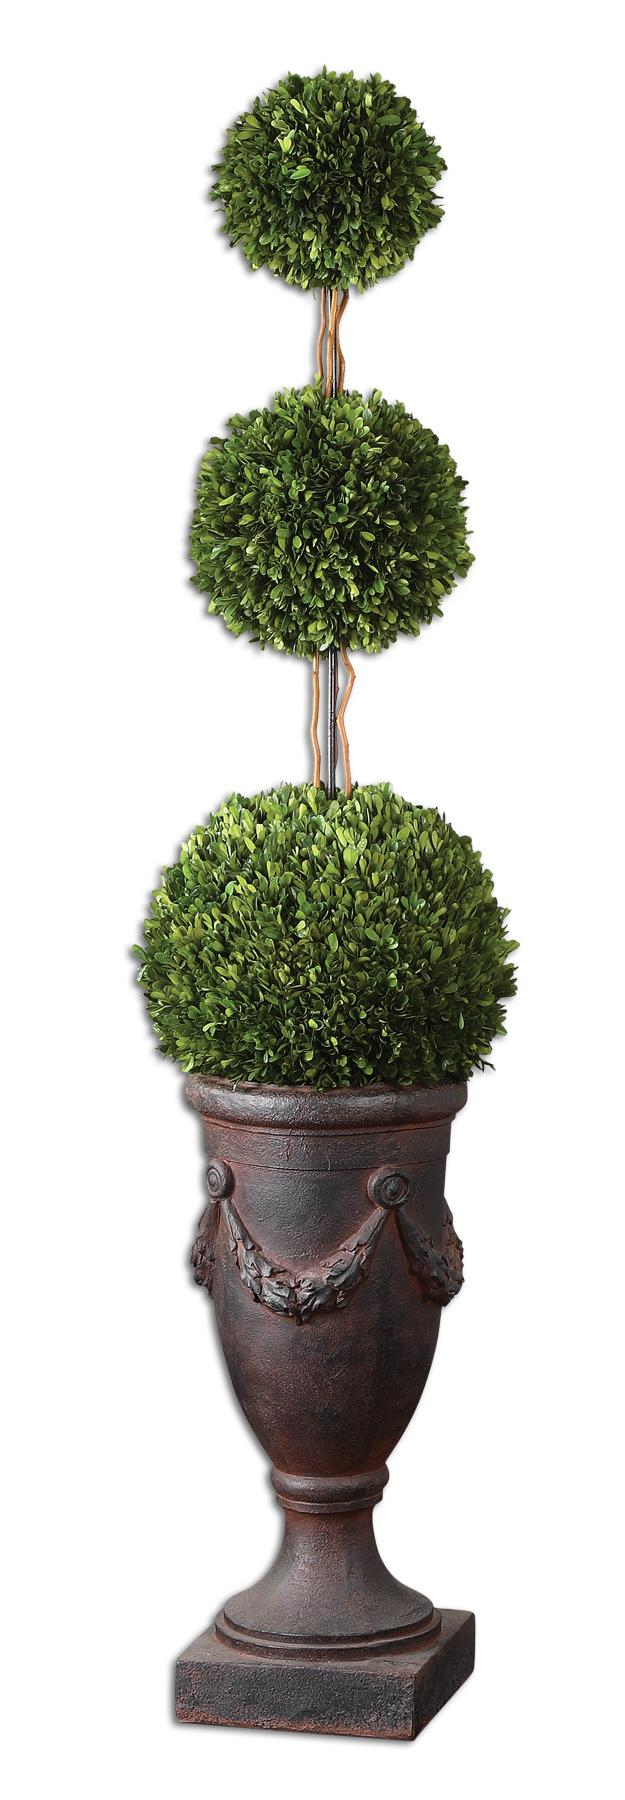 Uttermost Botanicals Preserved Boxwood Triple Topiary - Item Number: 60093